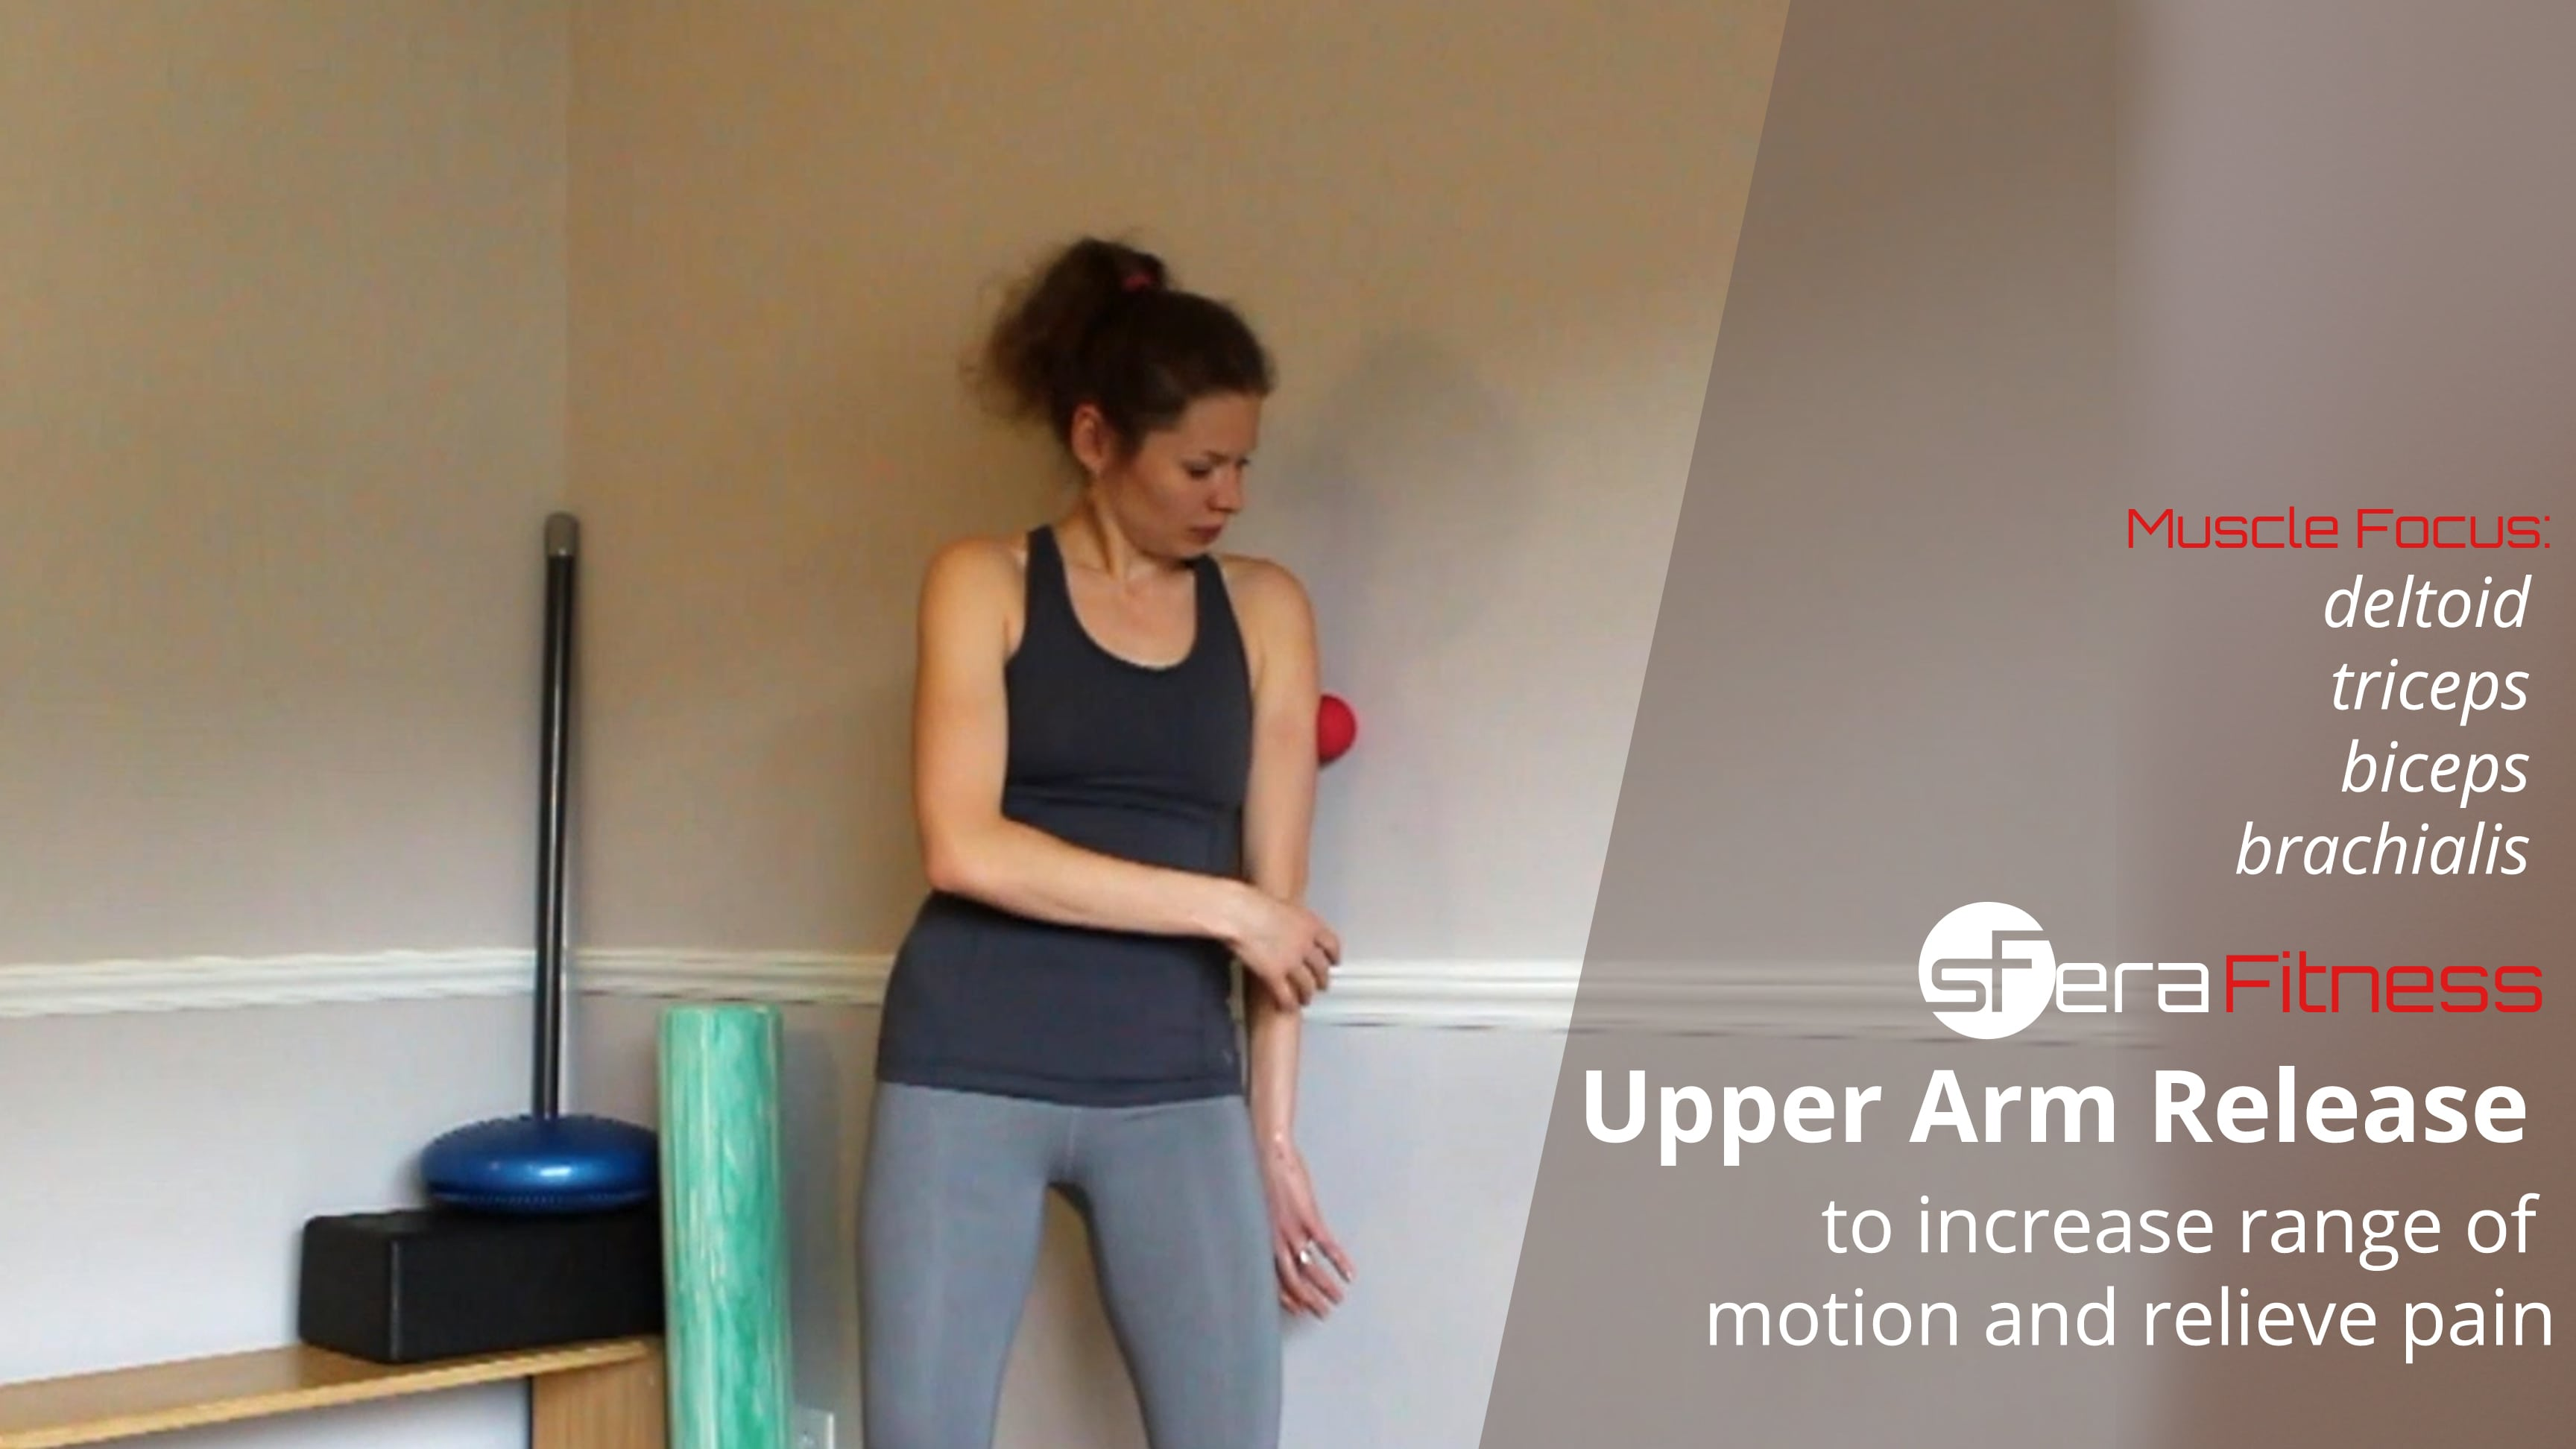 Upper Arm Myofascial and Trigger Point Release to Increase Range of Motion and Relieve Pain